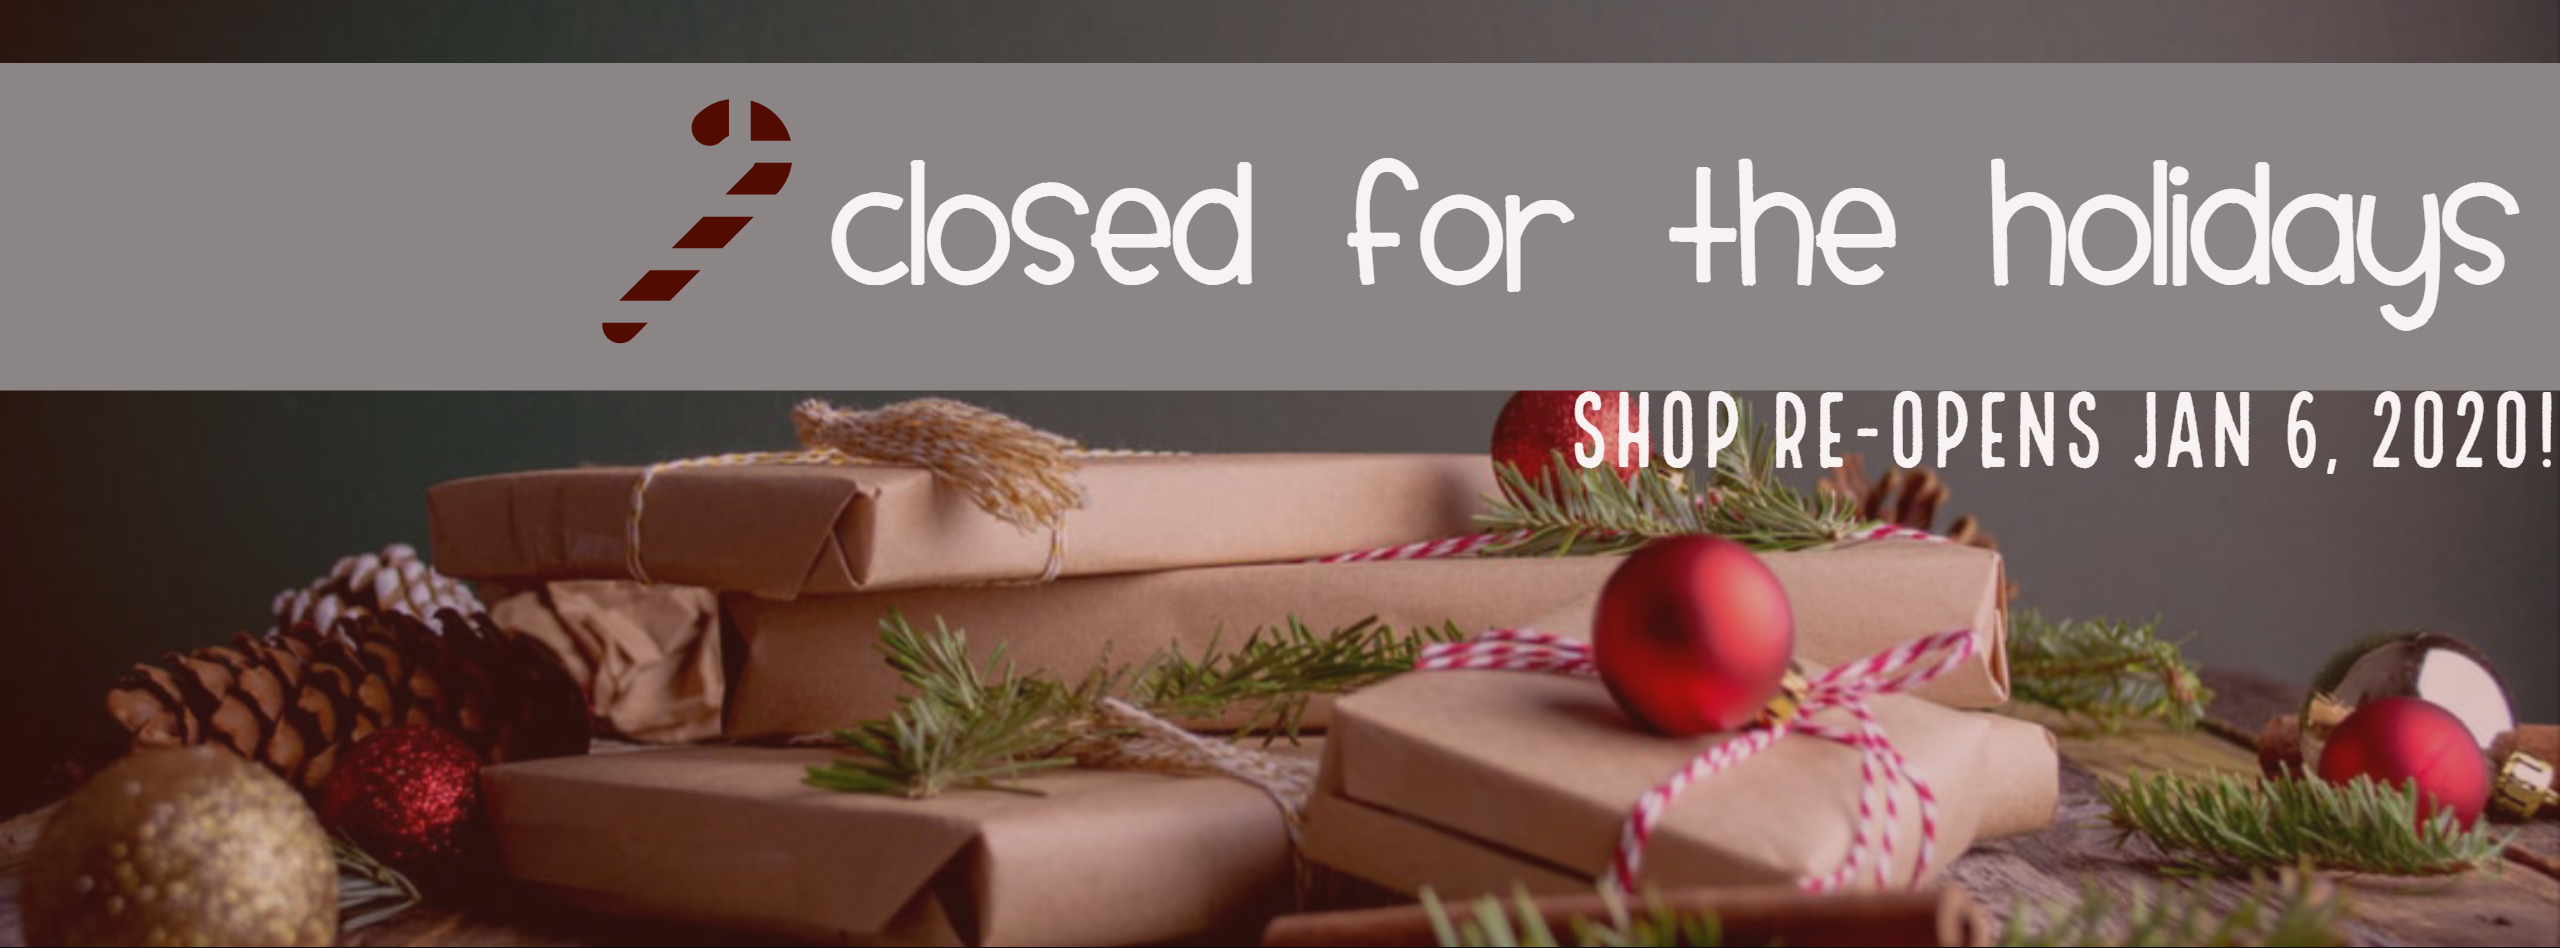 Happy Holidays! Shop re-opens January 6, 2020